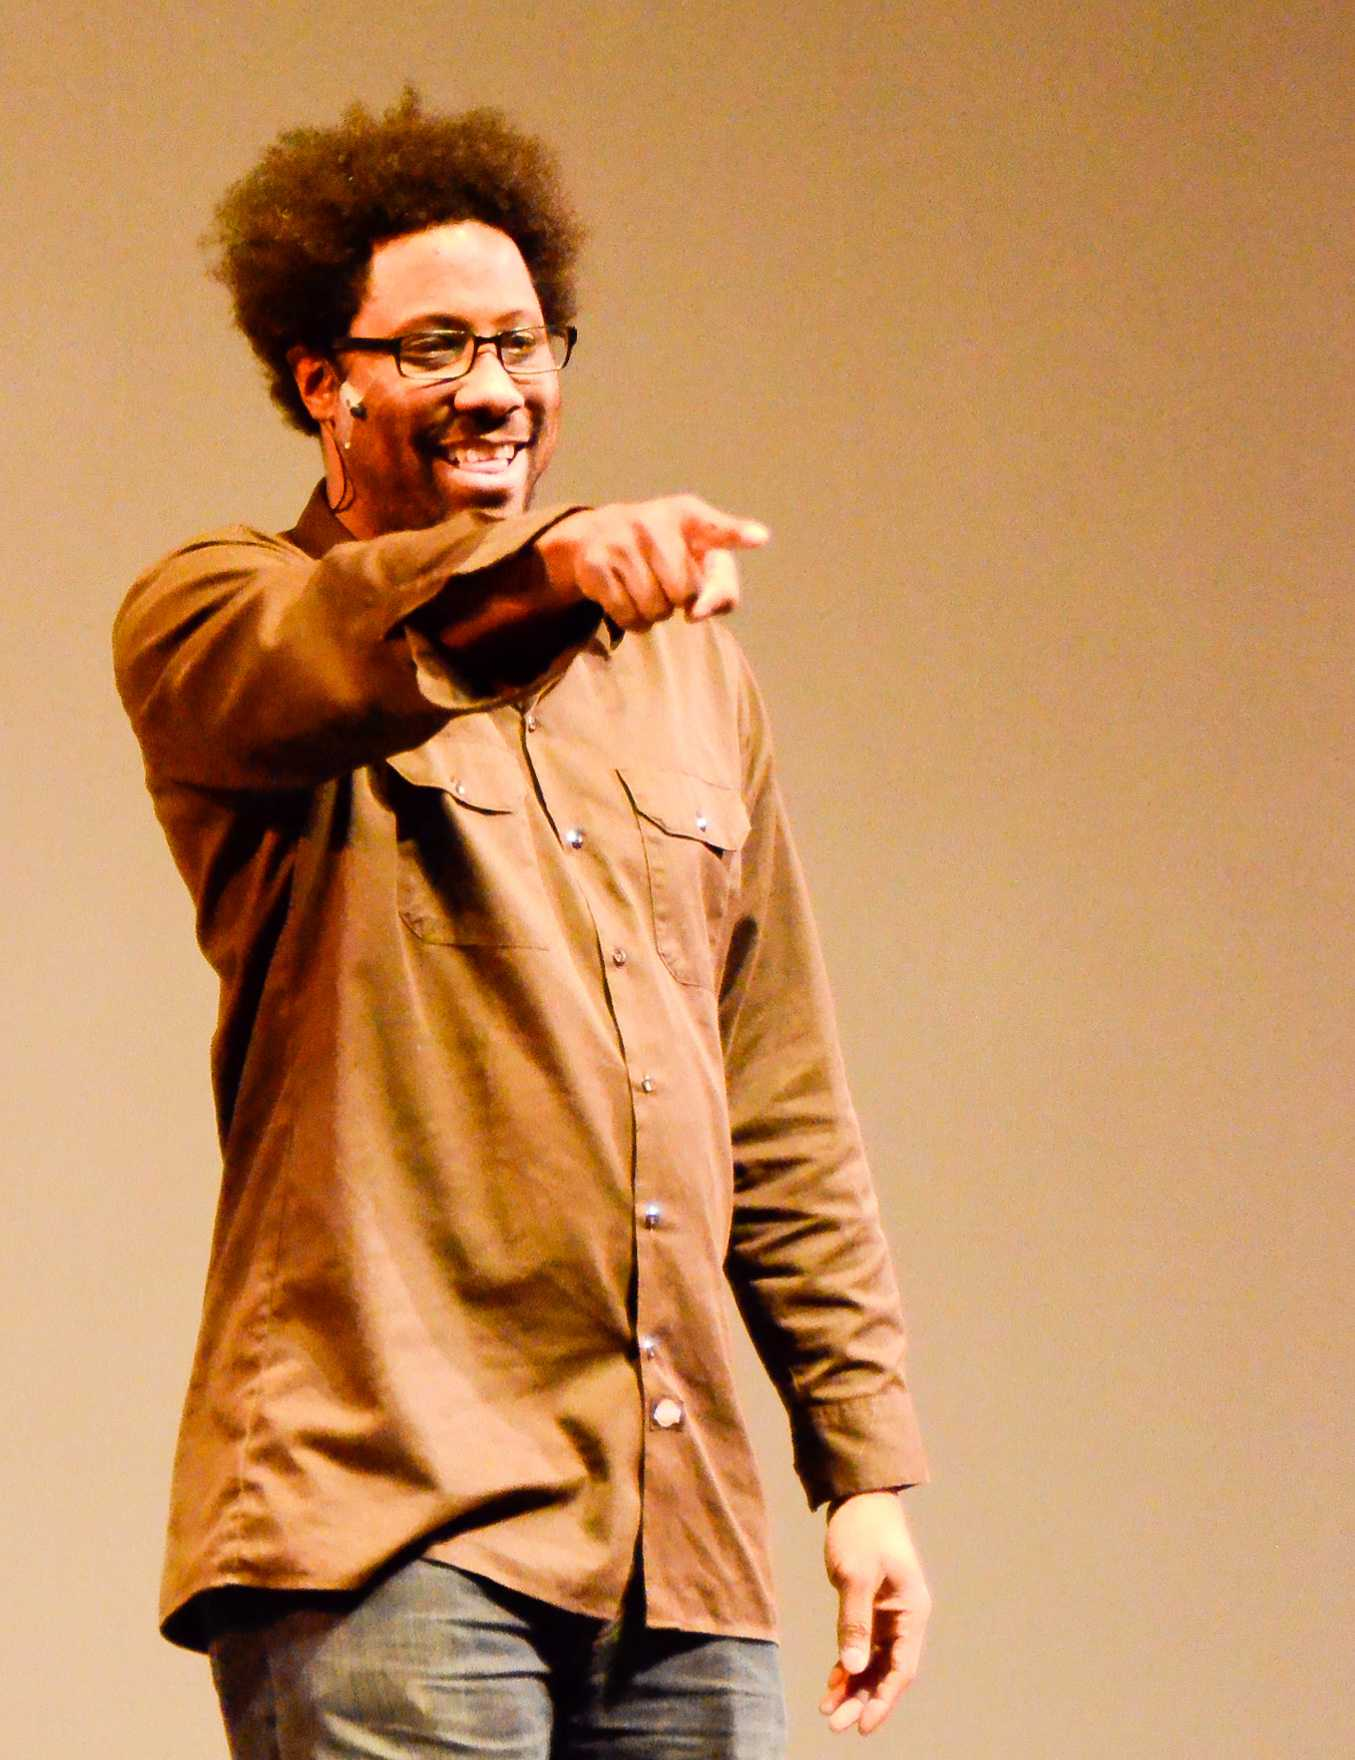 Comdian W. Kamau Bell points to the audience during his performance at Skyline College. (Robyn Graham)